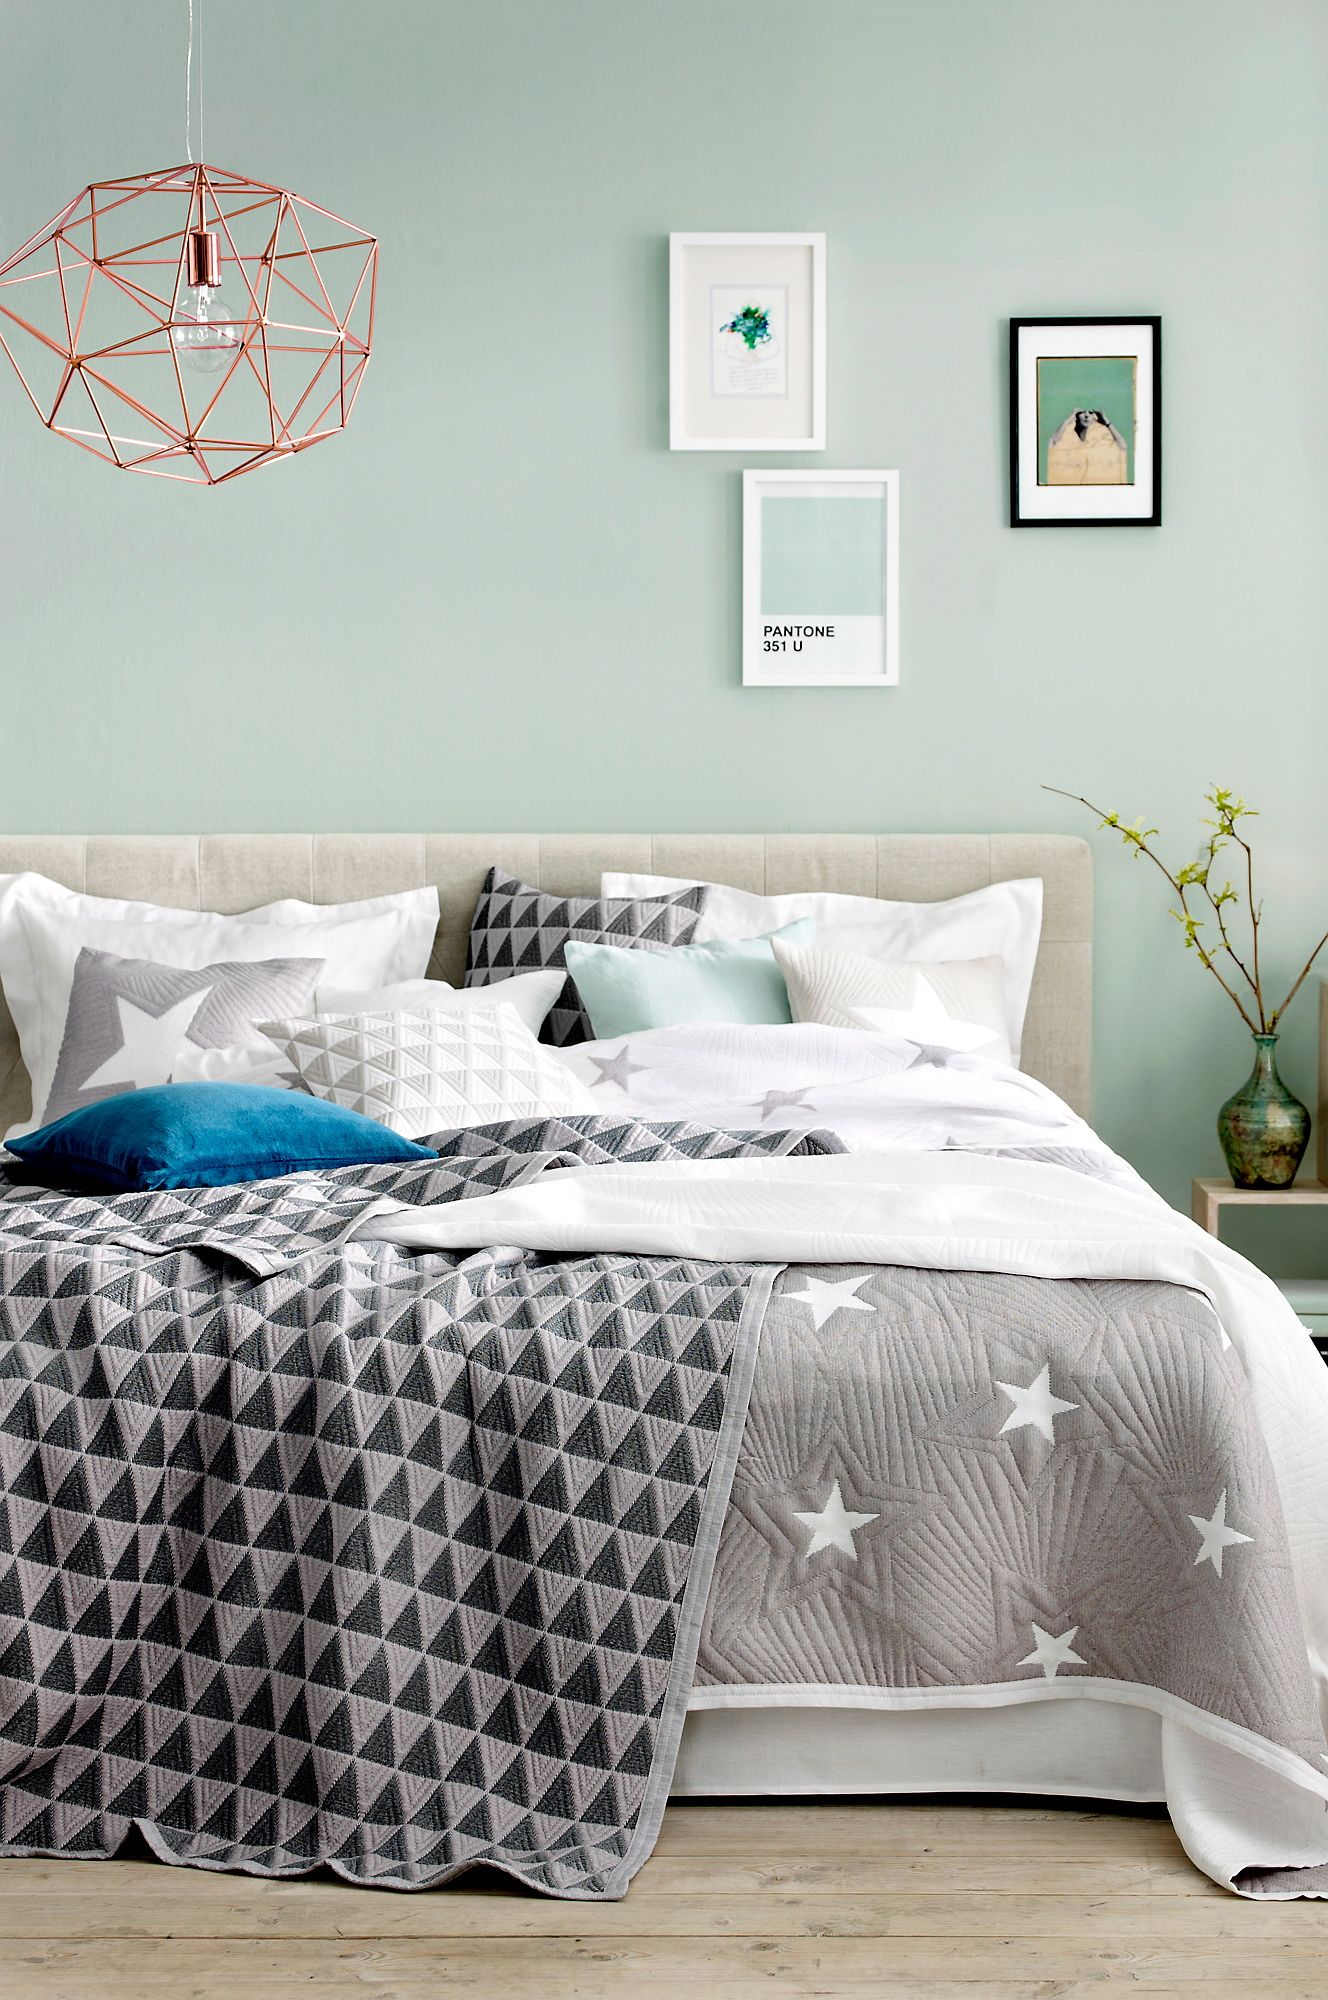 Bedrooms With Green Walls mint, watery blue/green walls, grey accents, comfy bed,i like the